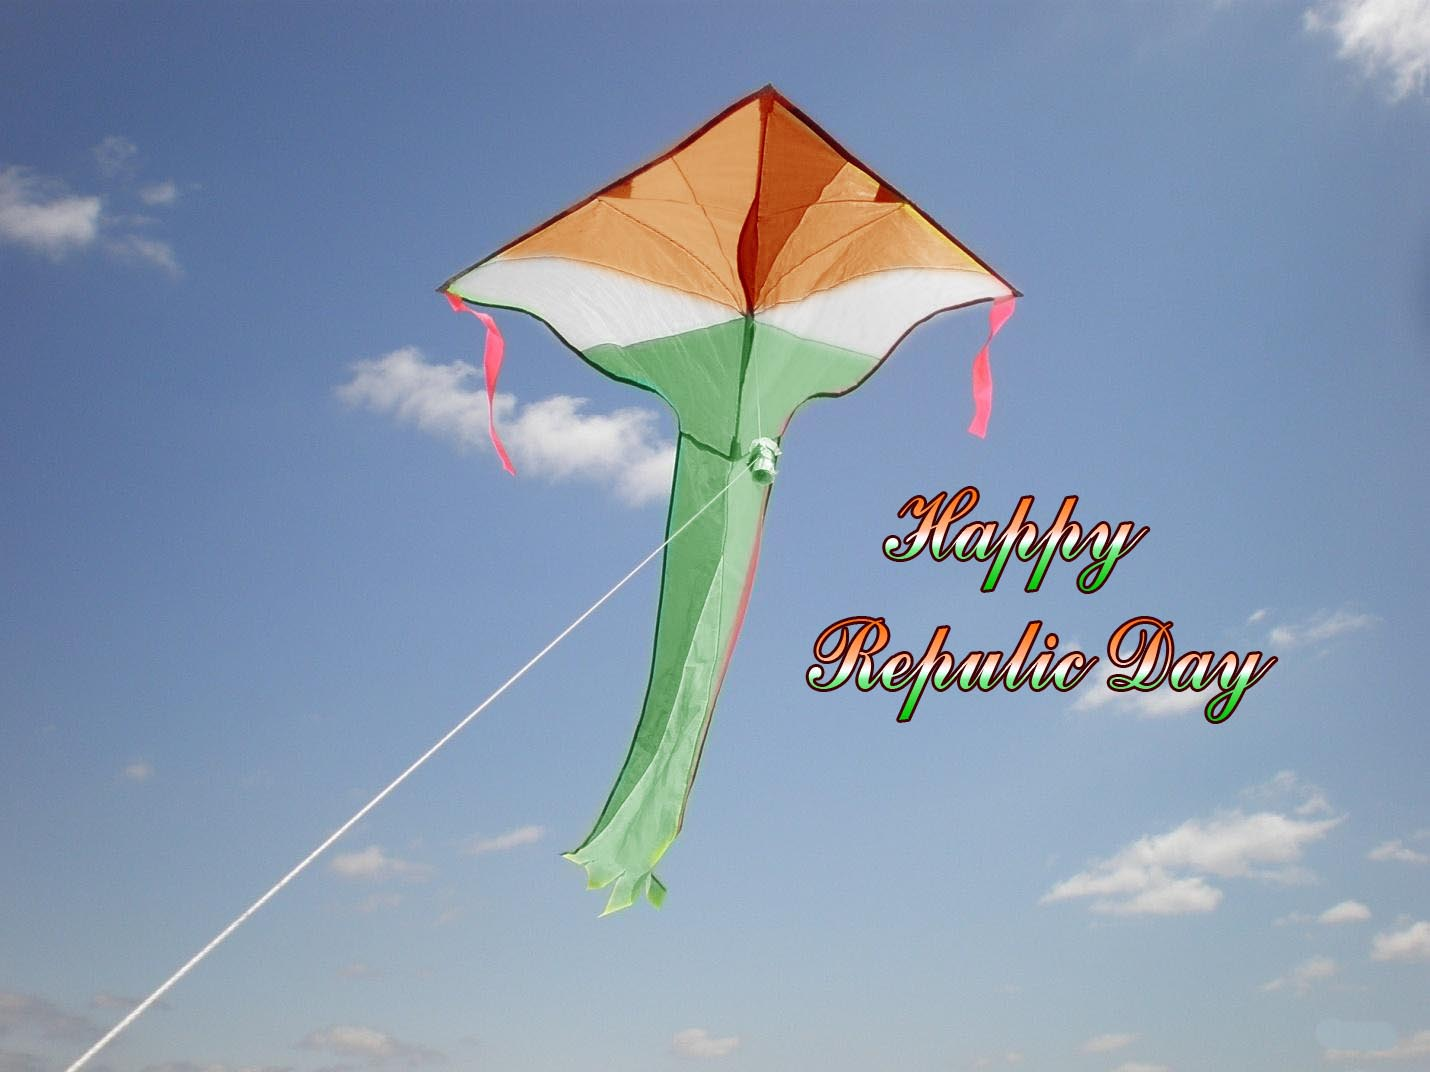 http://2.bp.blogspot.com/-O7xdDD99KUs/UOfNZHzR8II/AAAAAAAAAxk/jNJXiyuh_As/s1600/Republicday+kite+whises+hd+pictuer.jpg